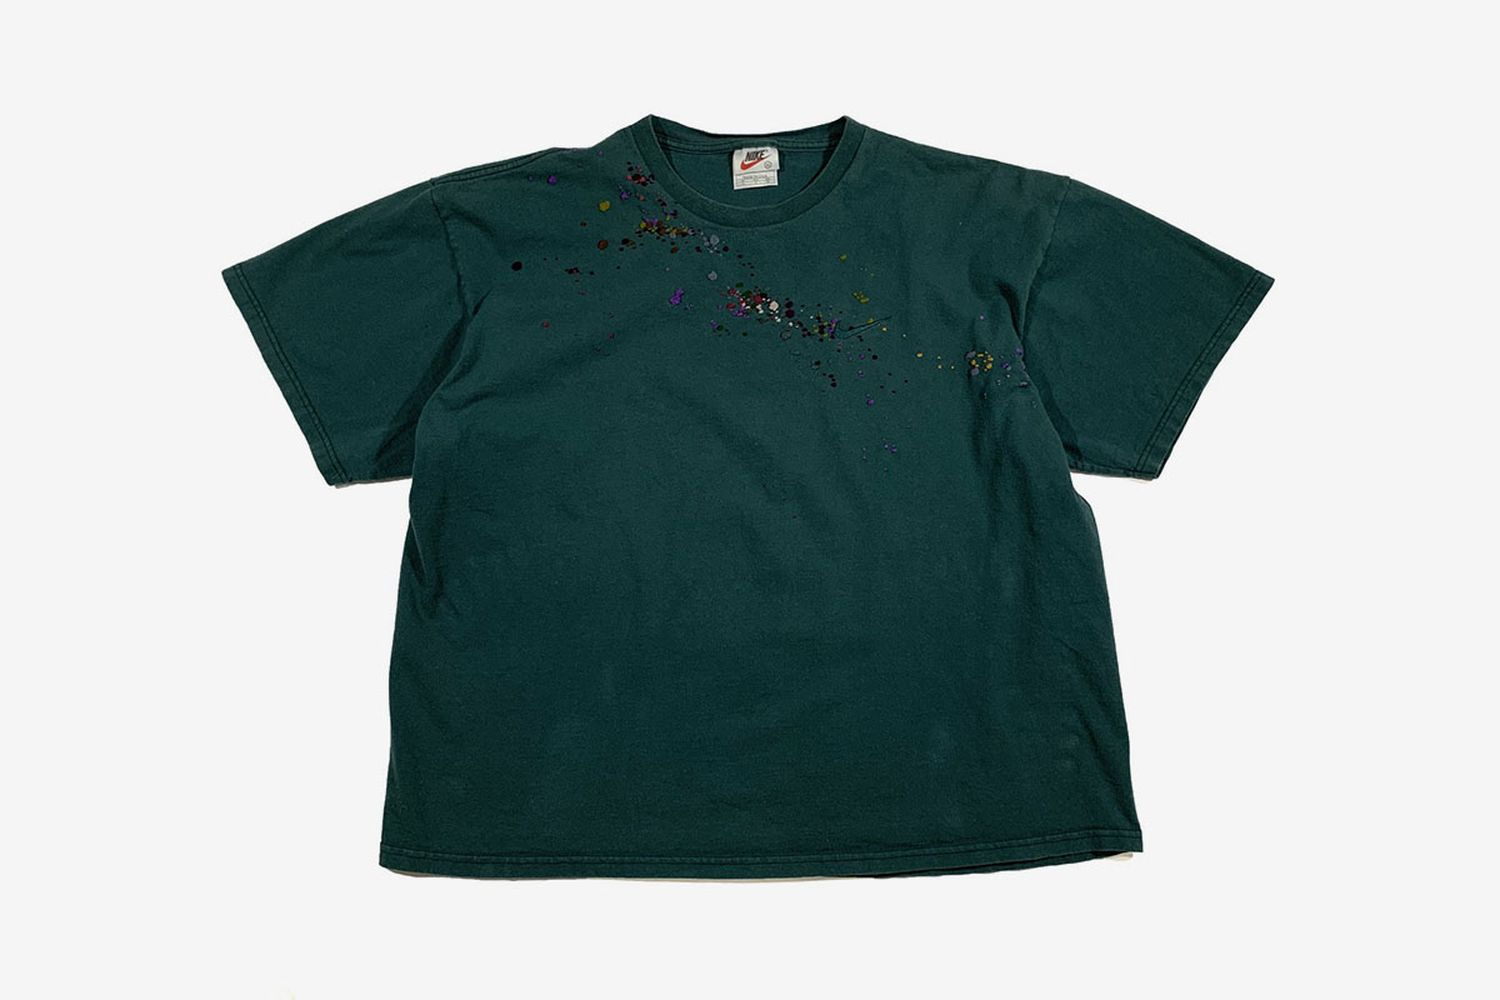 'Forest Thru The Trees' Vintage Nike T-Shirt